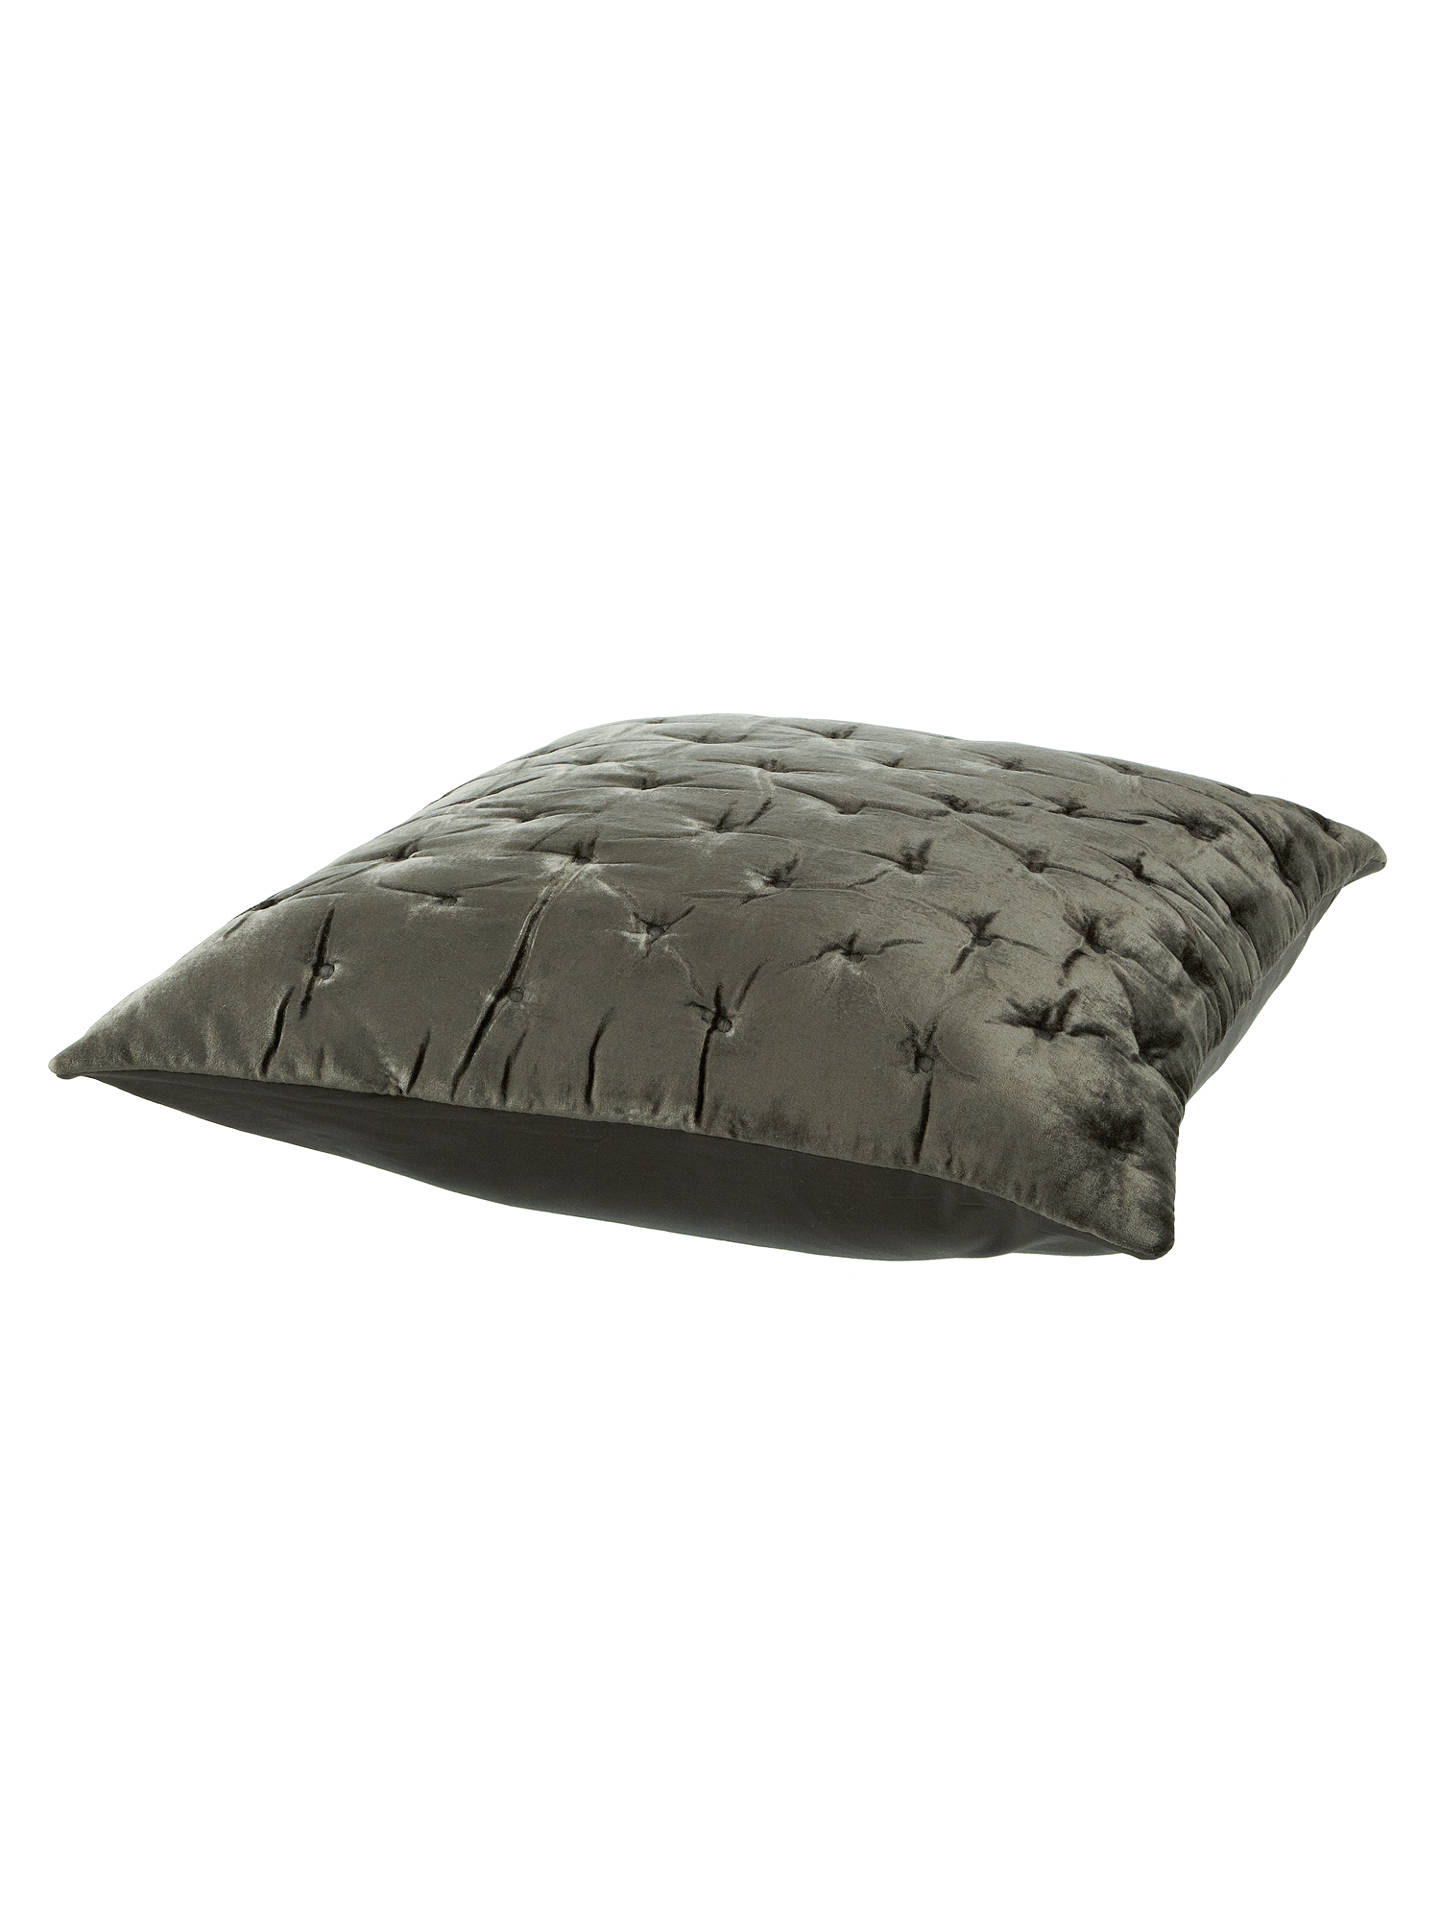 BuyJohn Lewis & Partners Velvet Stitch Cushion Cover, Steel Online at johnlewis.com